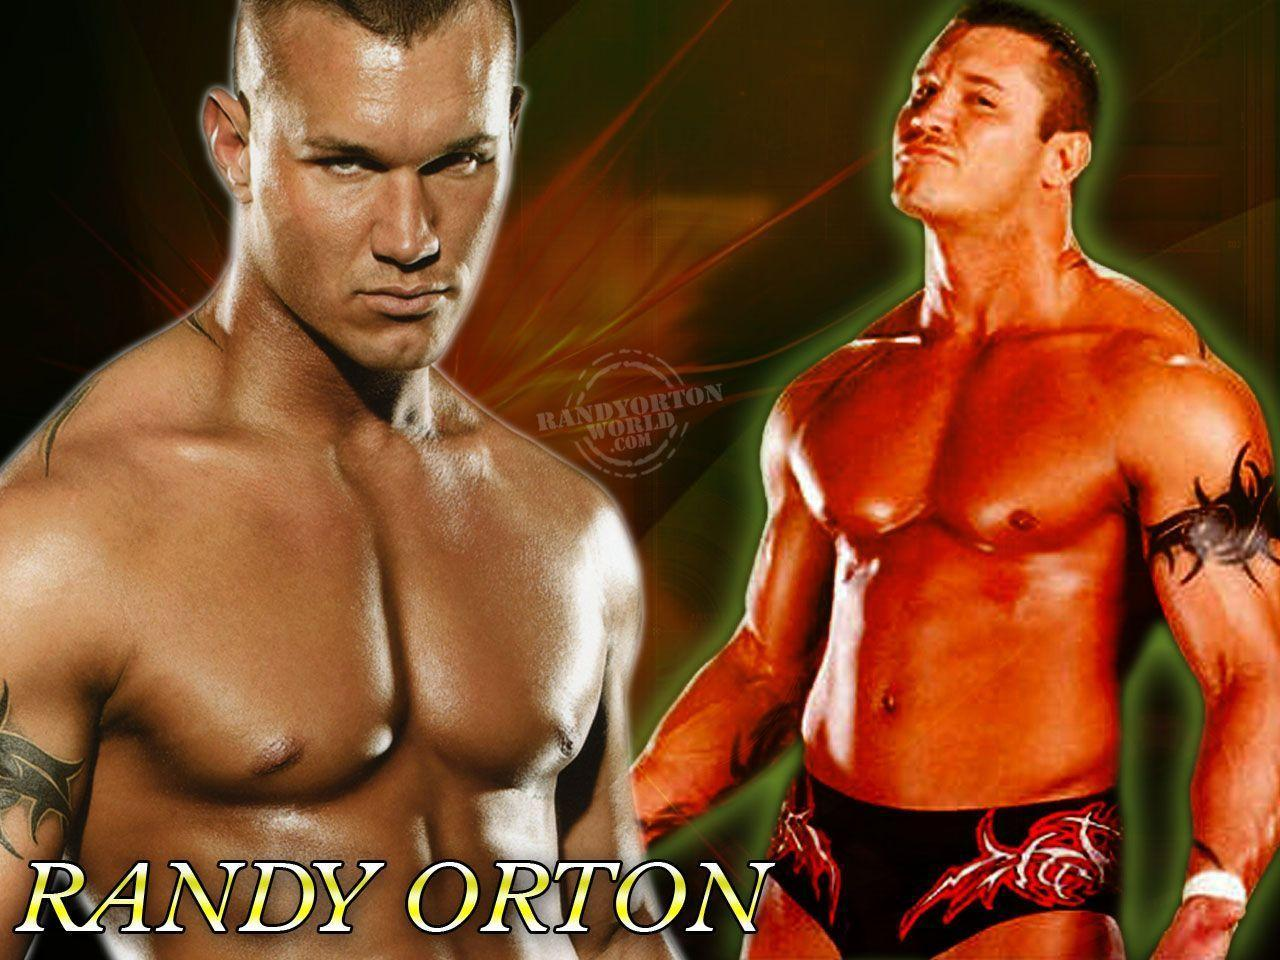 WWE Randy Orton Pictures, Videos and more